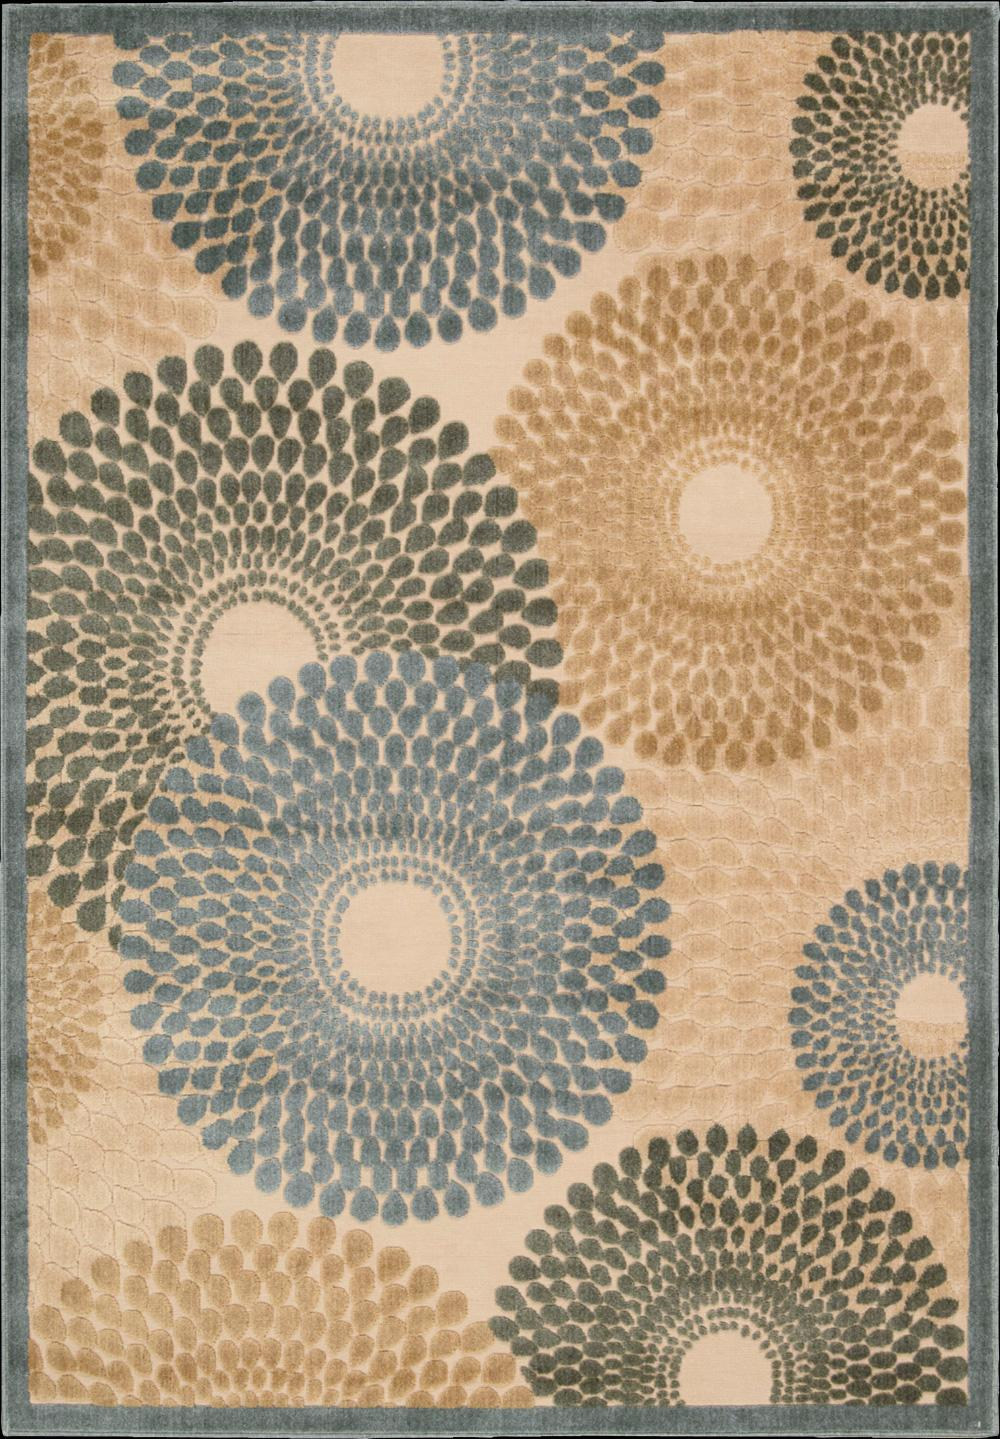 "Nourison Graphic Illusions Area Rug 3'6"" x 5'6"" - Item Number: 13293"